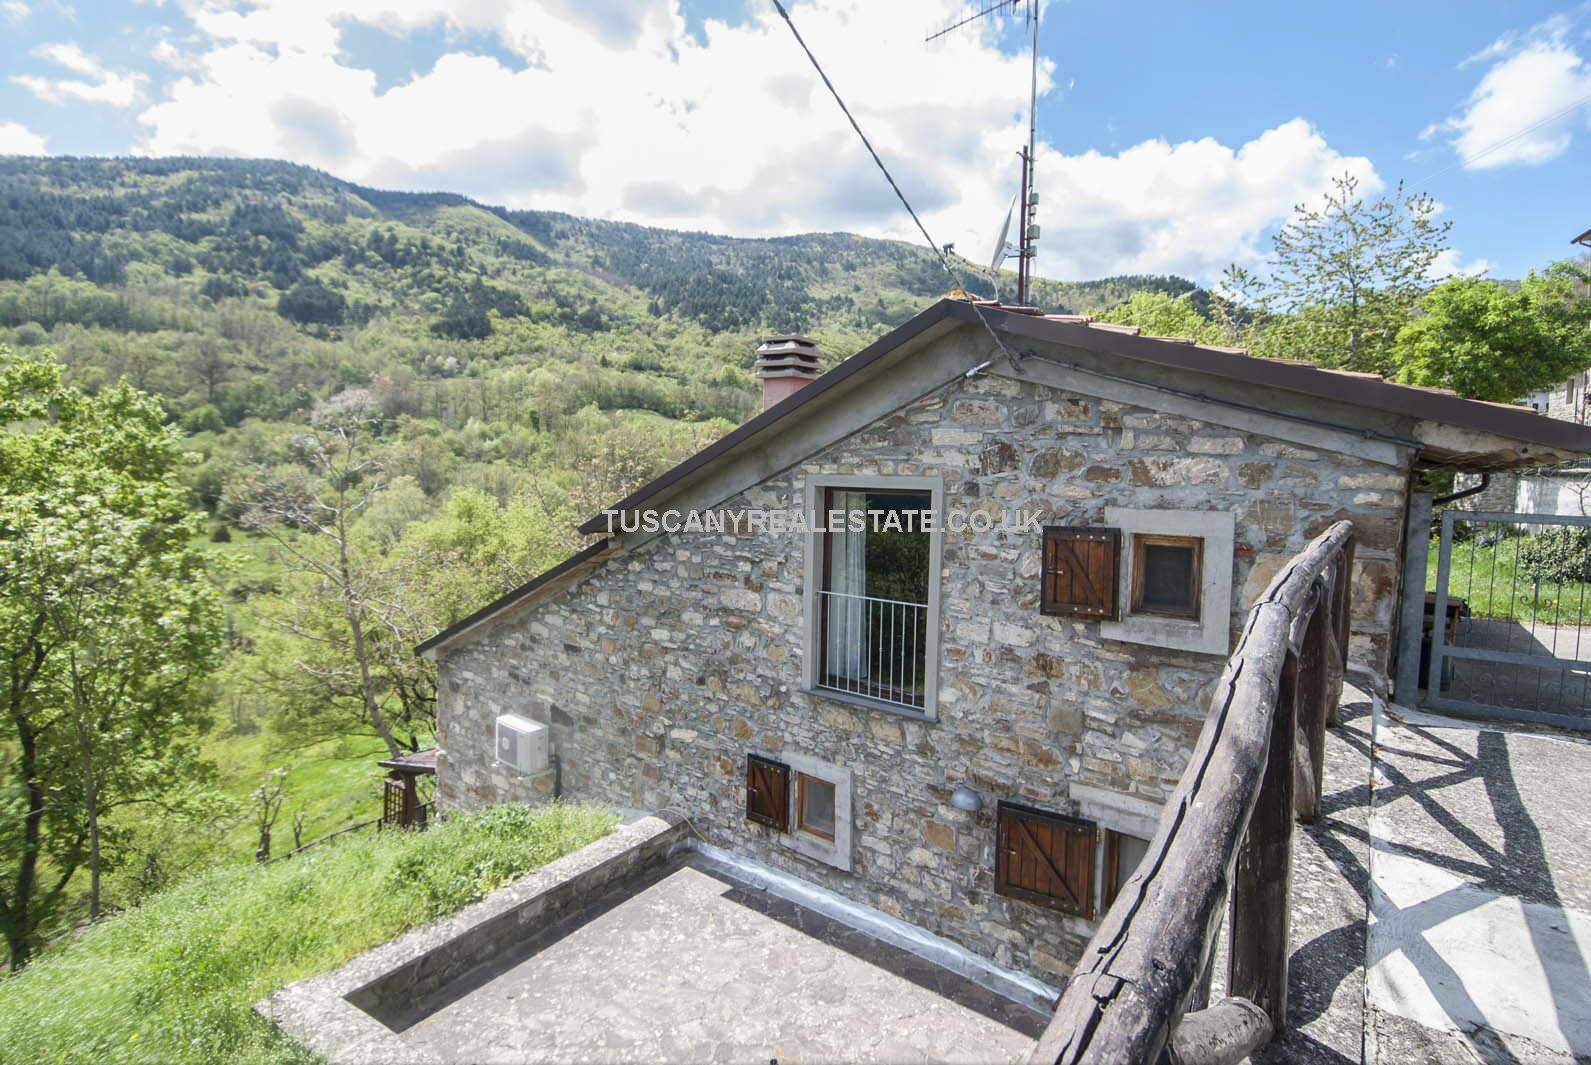 Cheap house for sale in Italy Tuscany